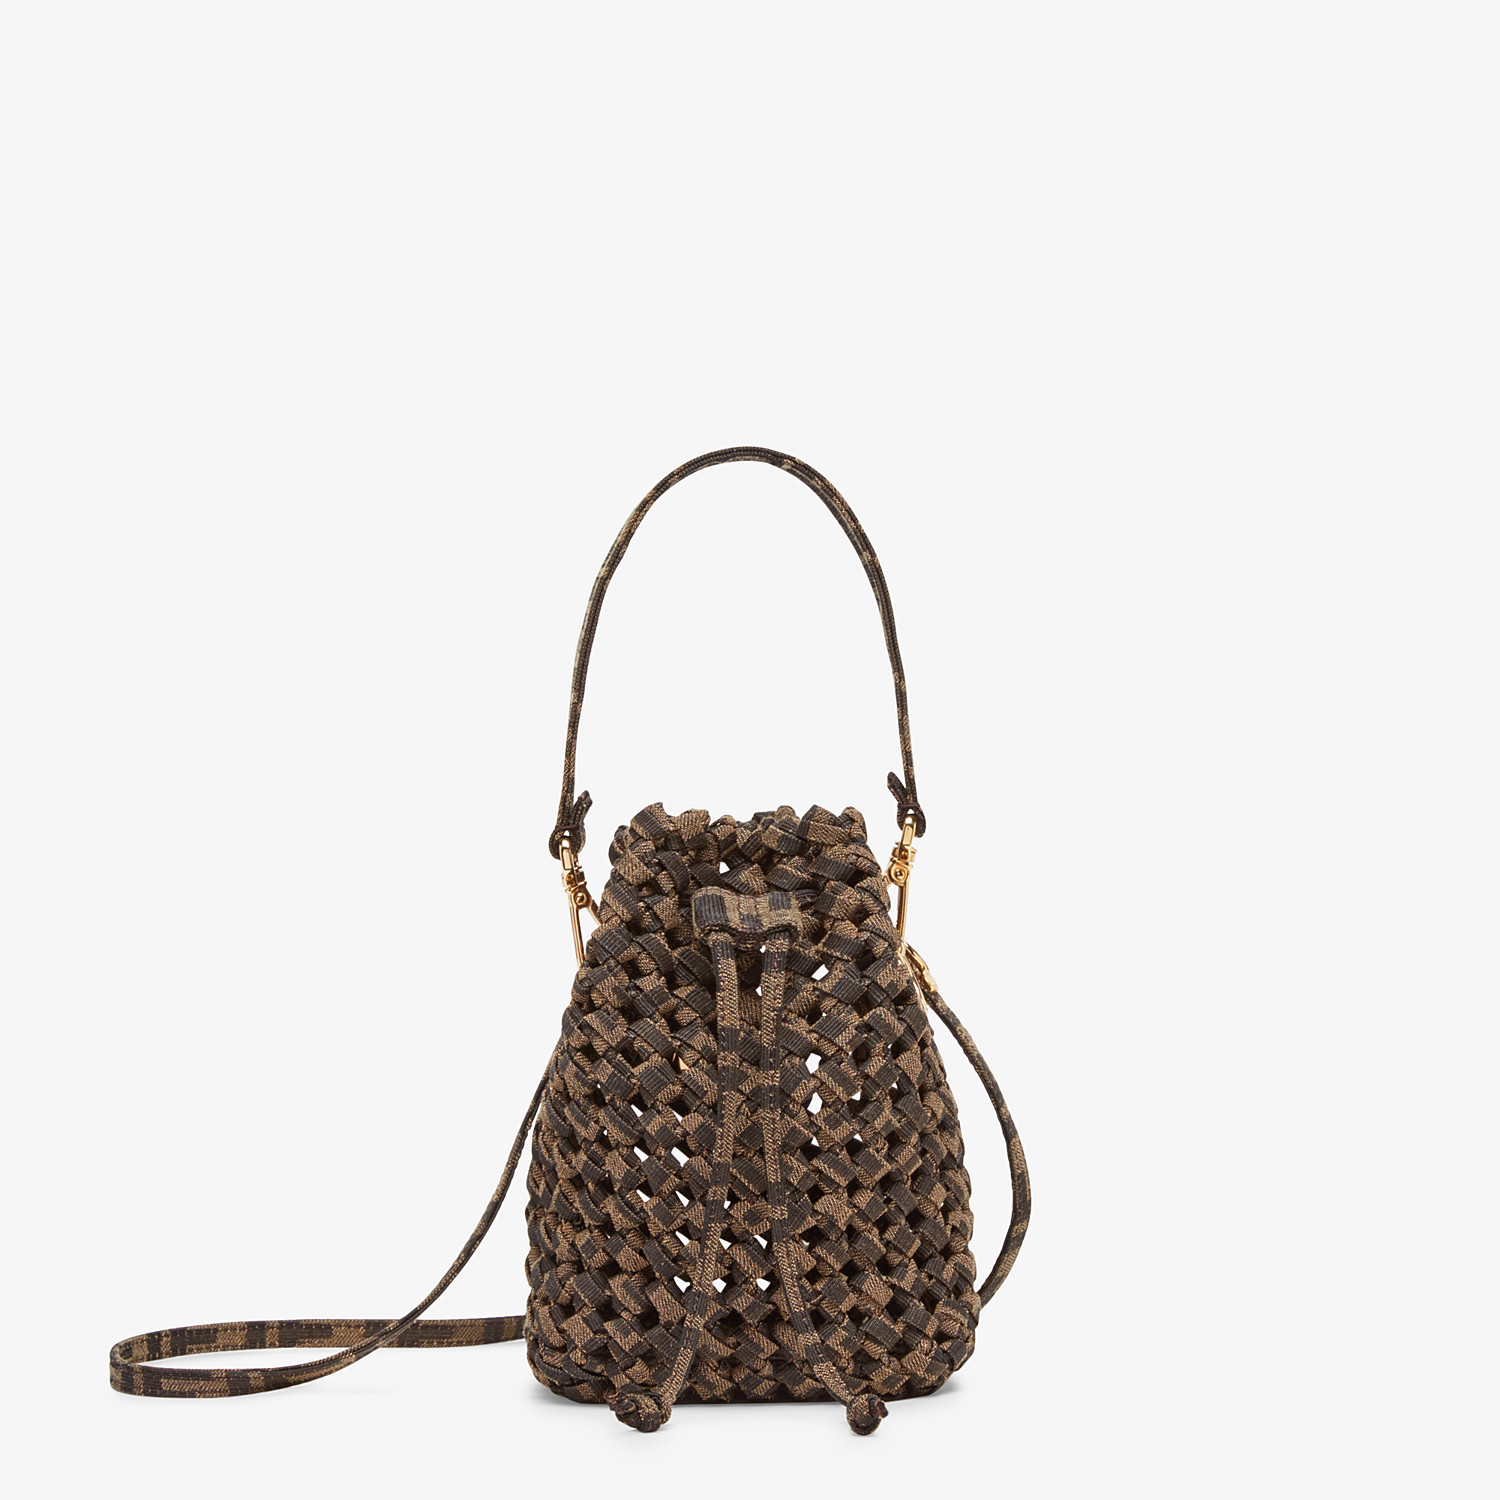 FENDI MON TRESOR - Jacquard fabric interlace mini-bag - view 1 detail